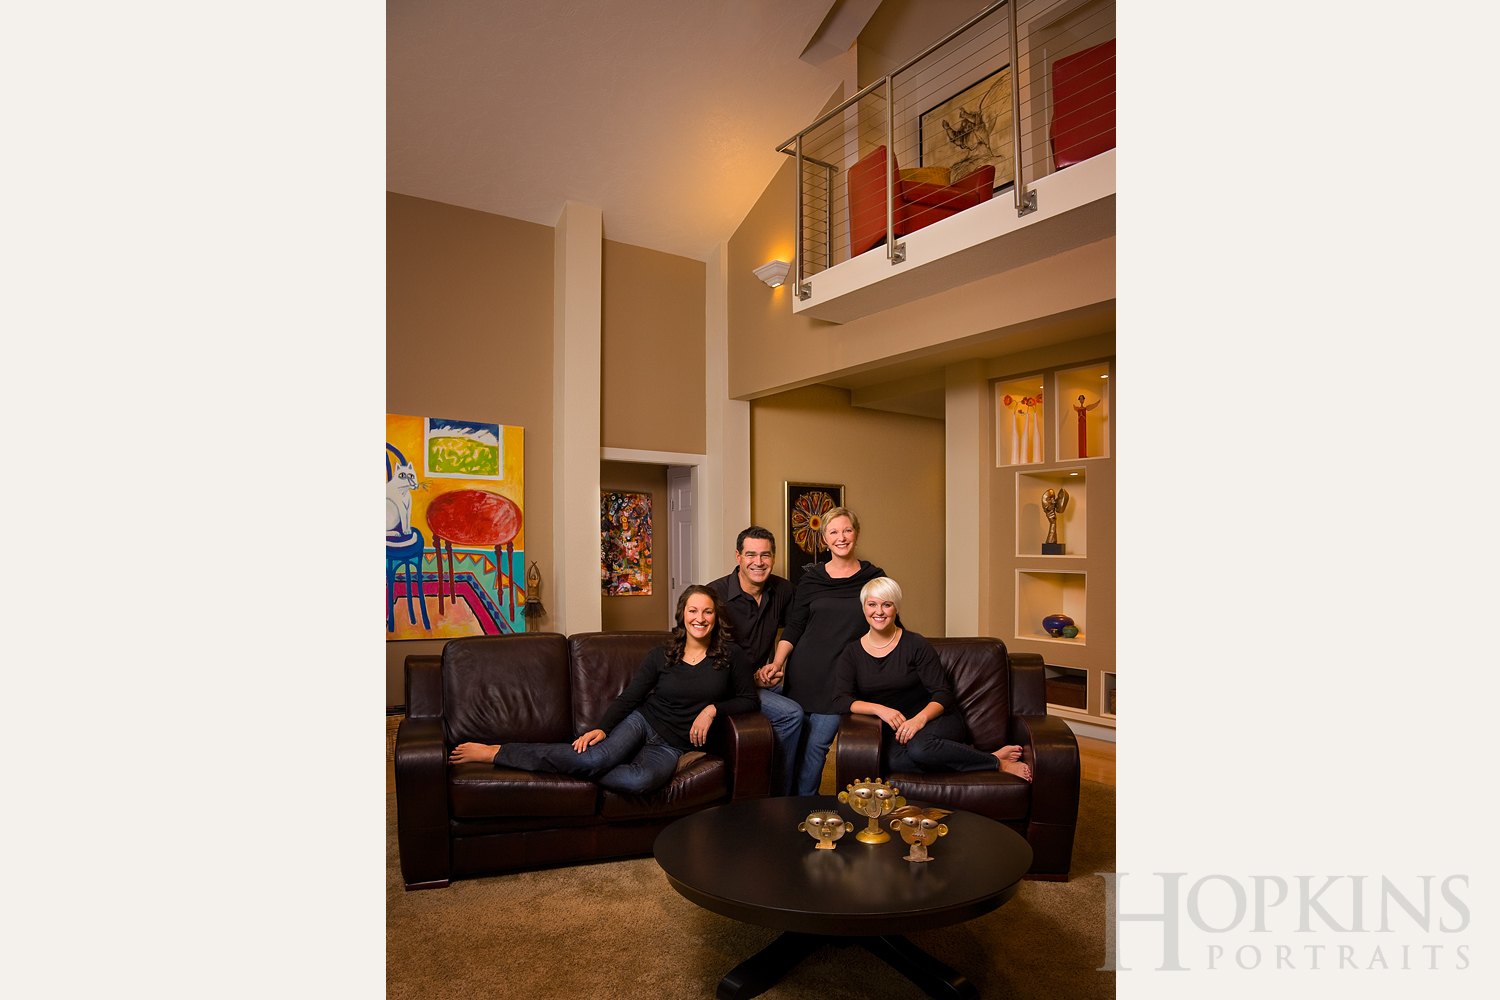 ayers_family_portrait_interior_location_home_photography.jpg